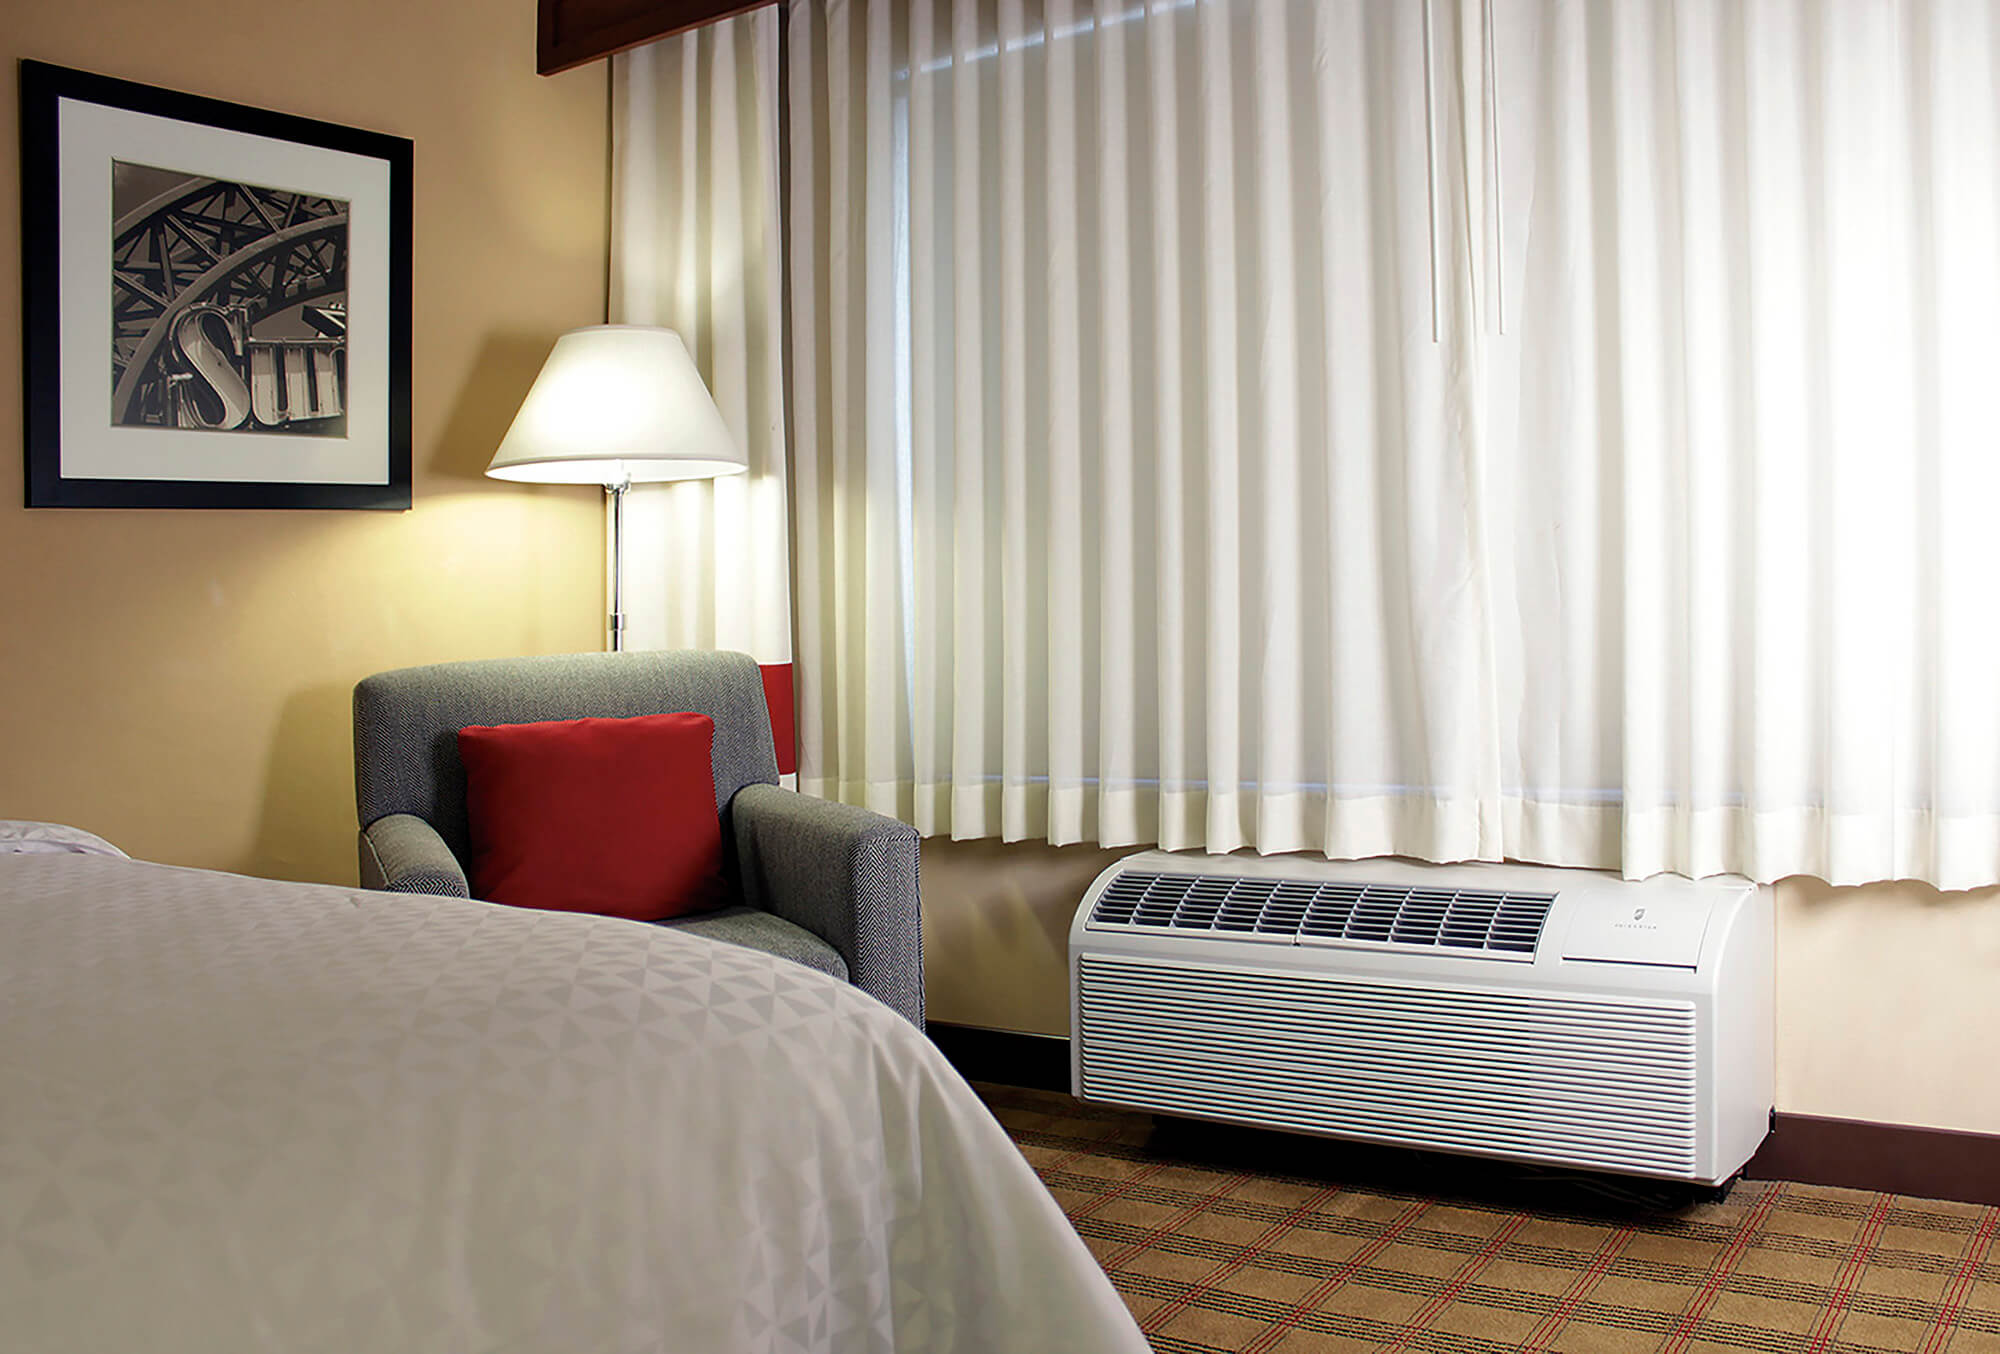 Room Air Conditioner Cost